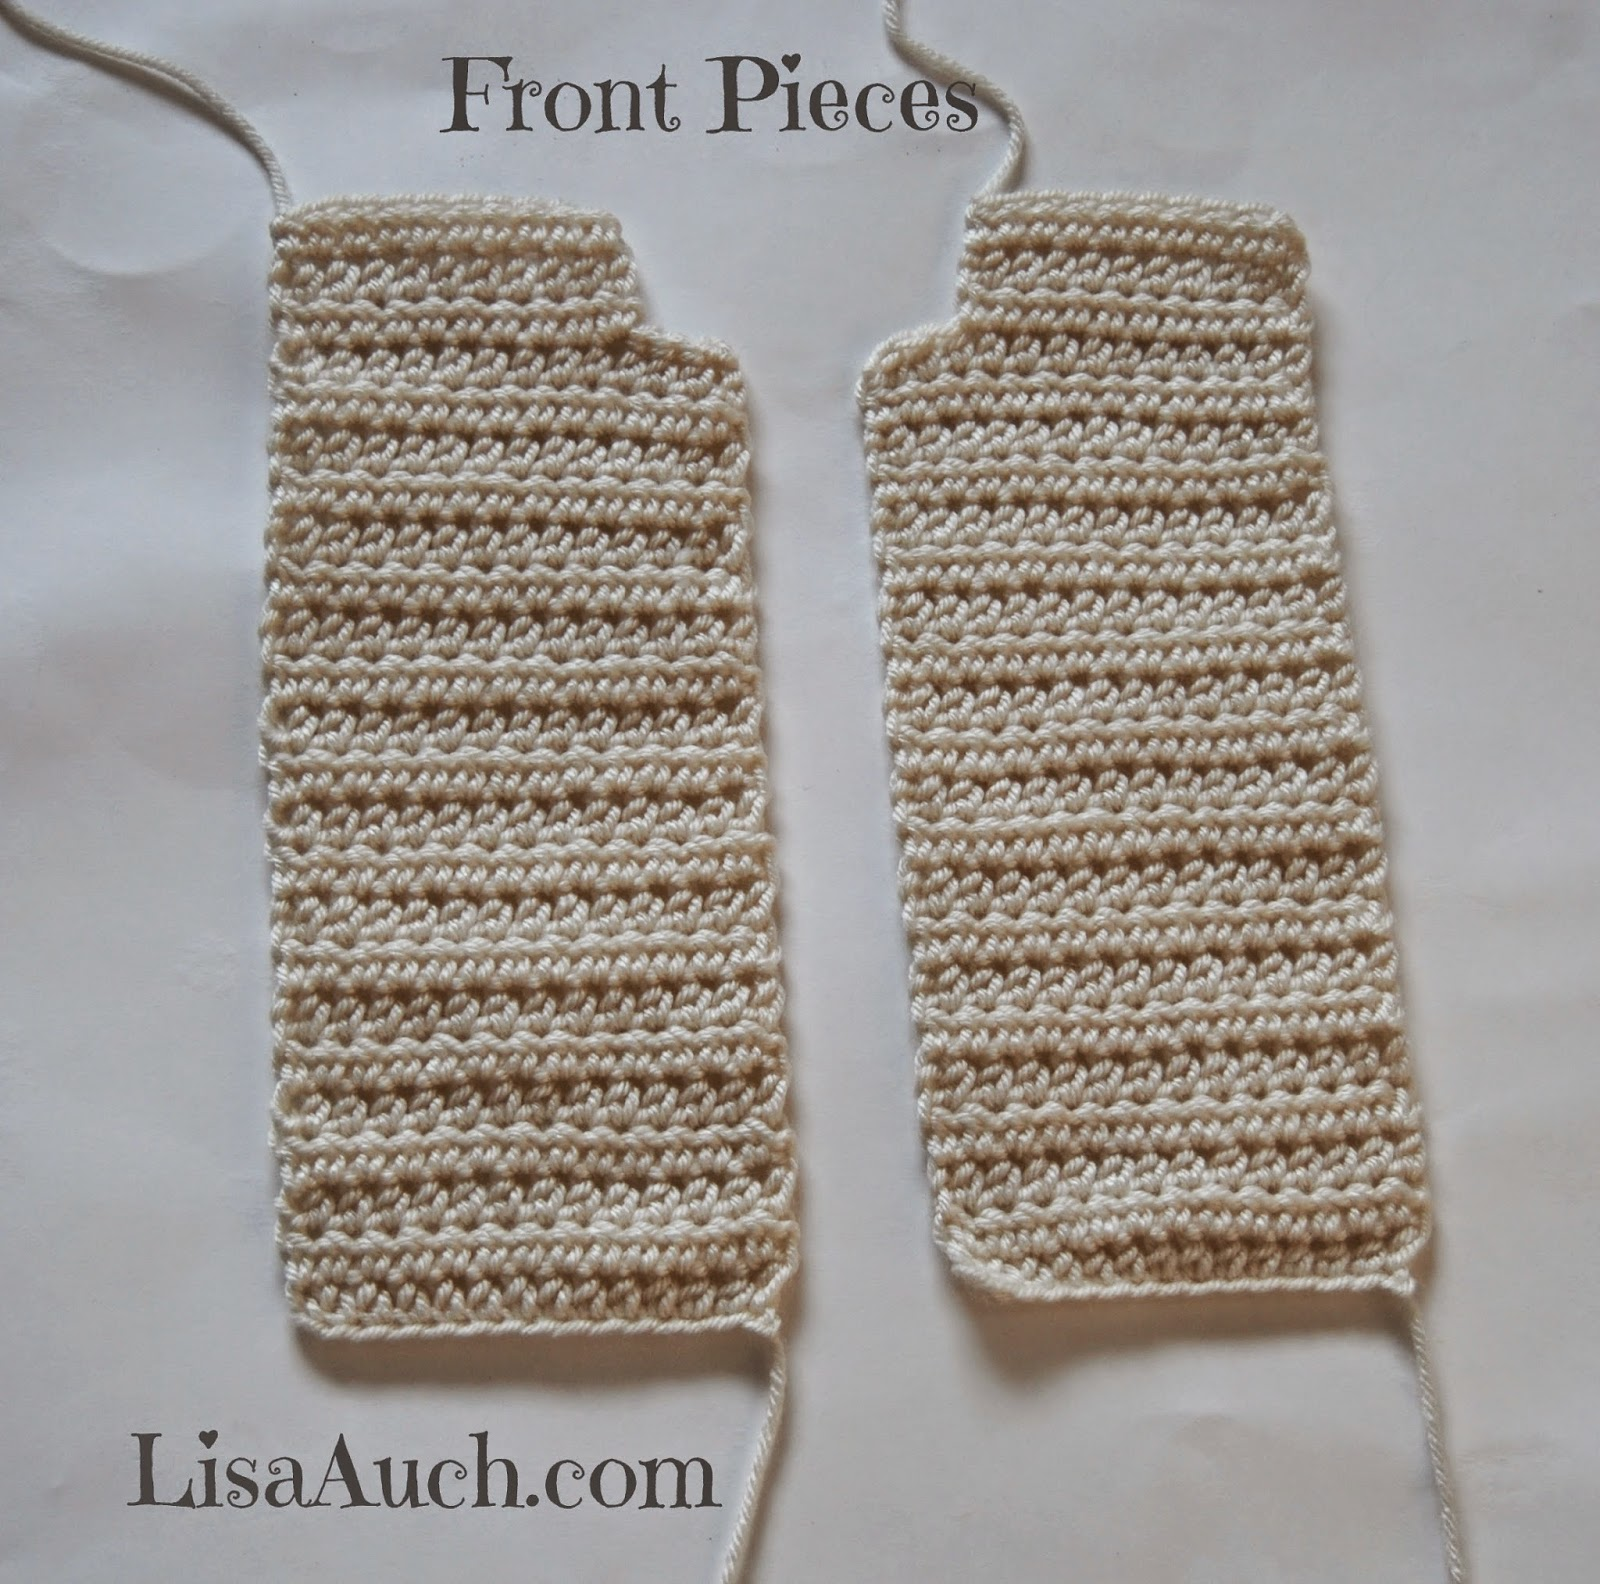 Atractivo Crochet Vest Patterns Free Embellecimiento - Manta de ...